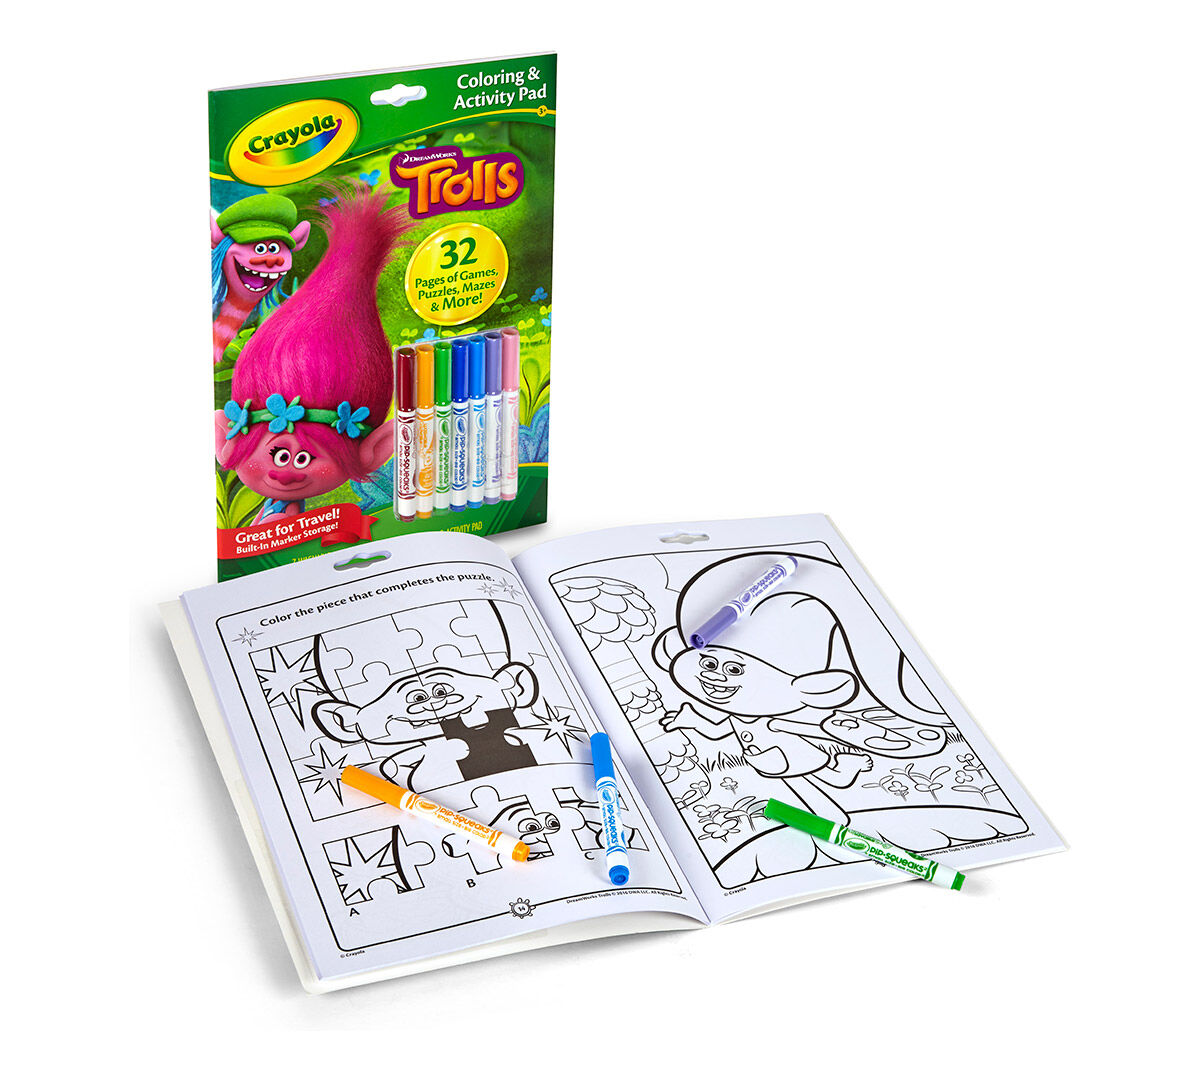 Book coloring - Coloring Activity Book Trolls